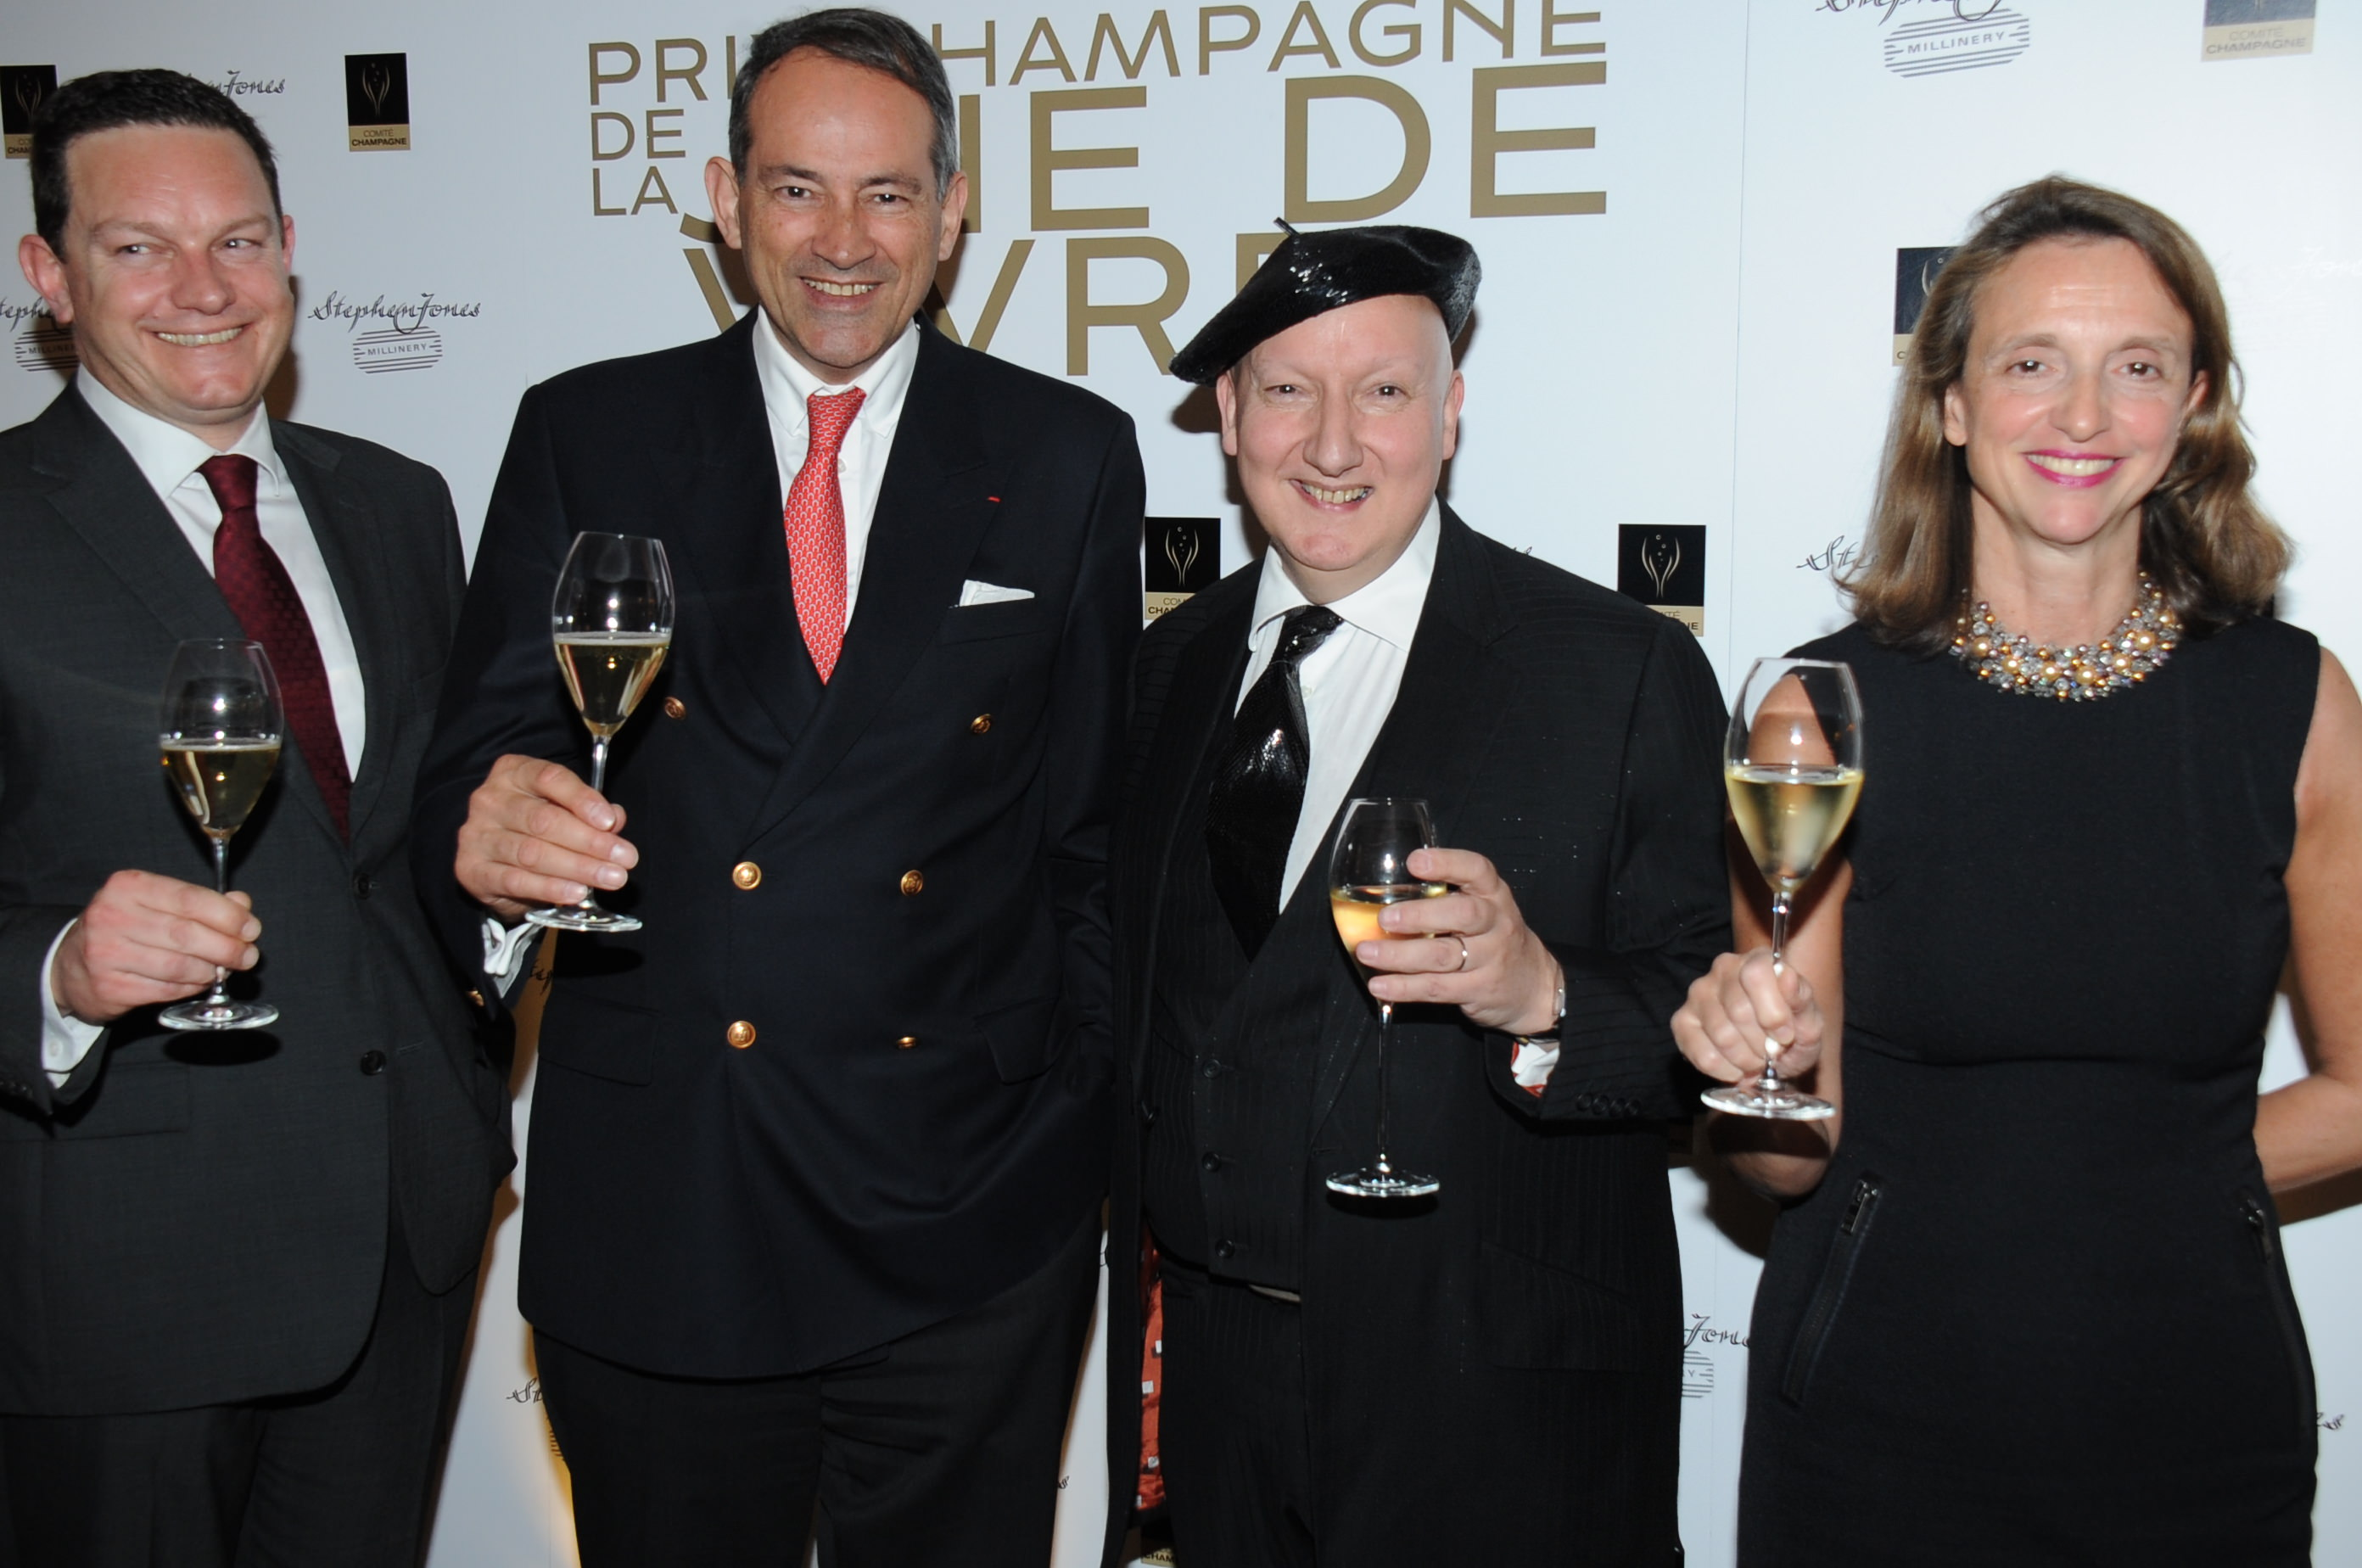 Prix Champagne De La Joie De Vivre UK, at The Undercroft at The Banqueting House, London, Britain - 12 Mar 2014